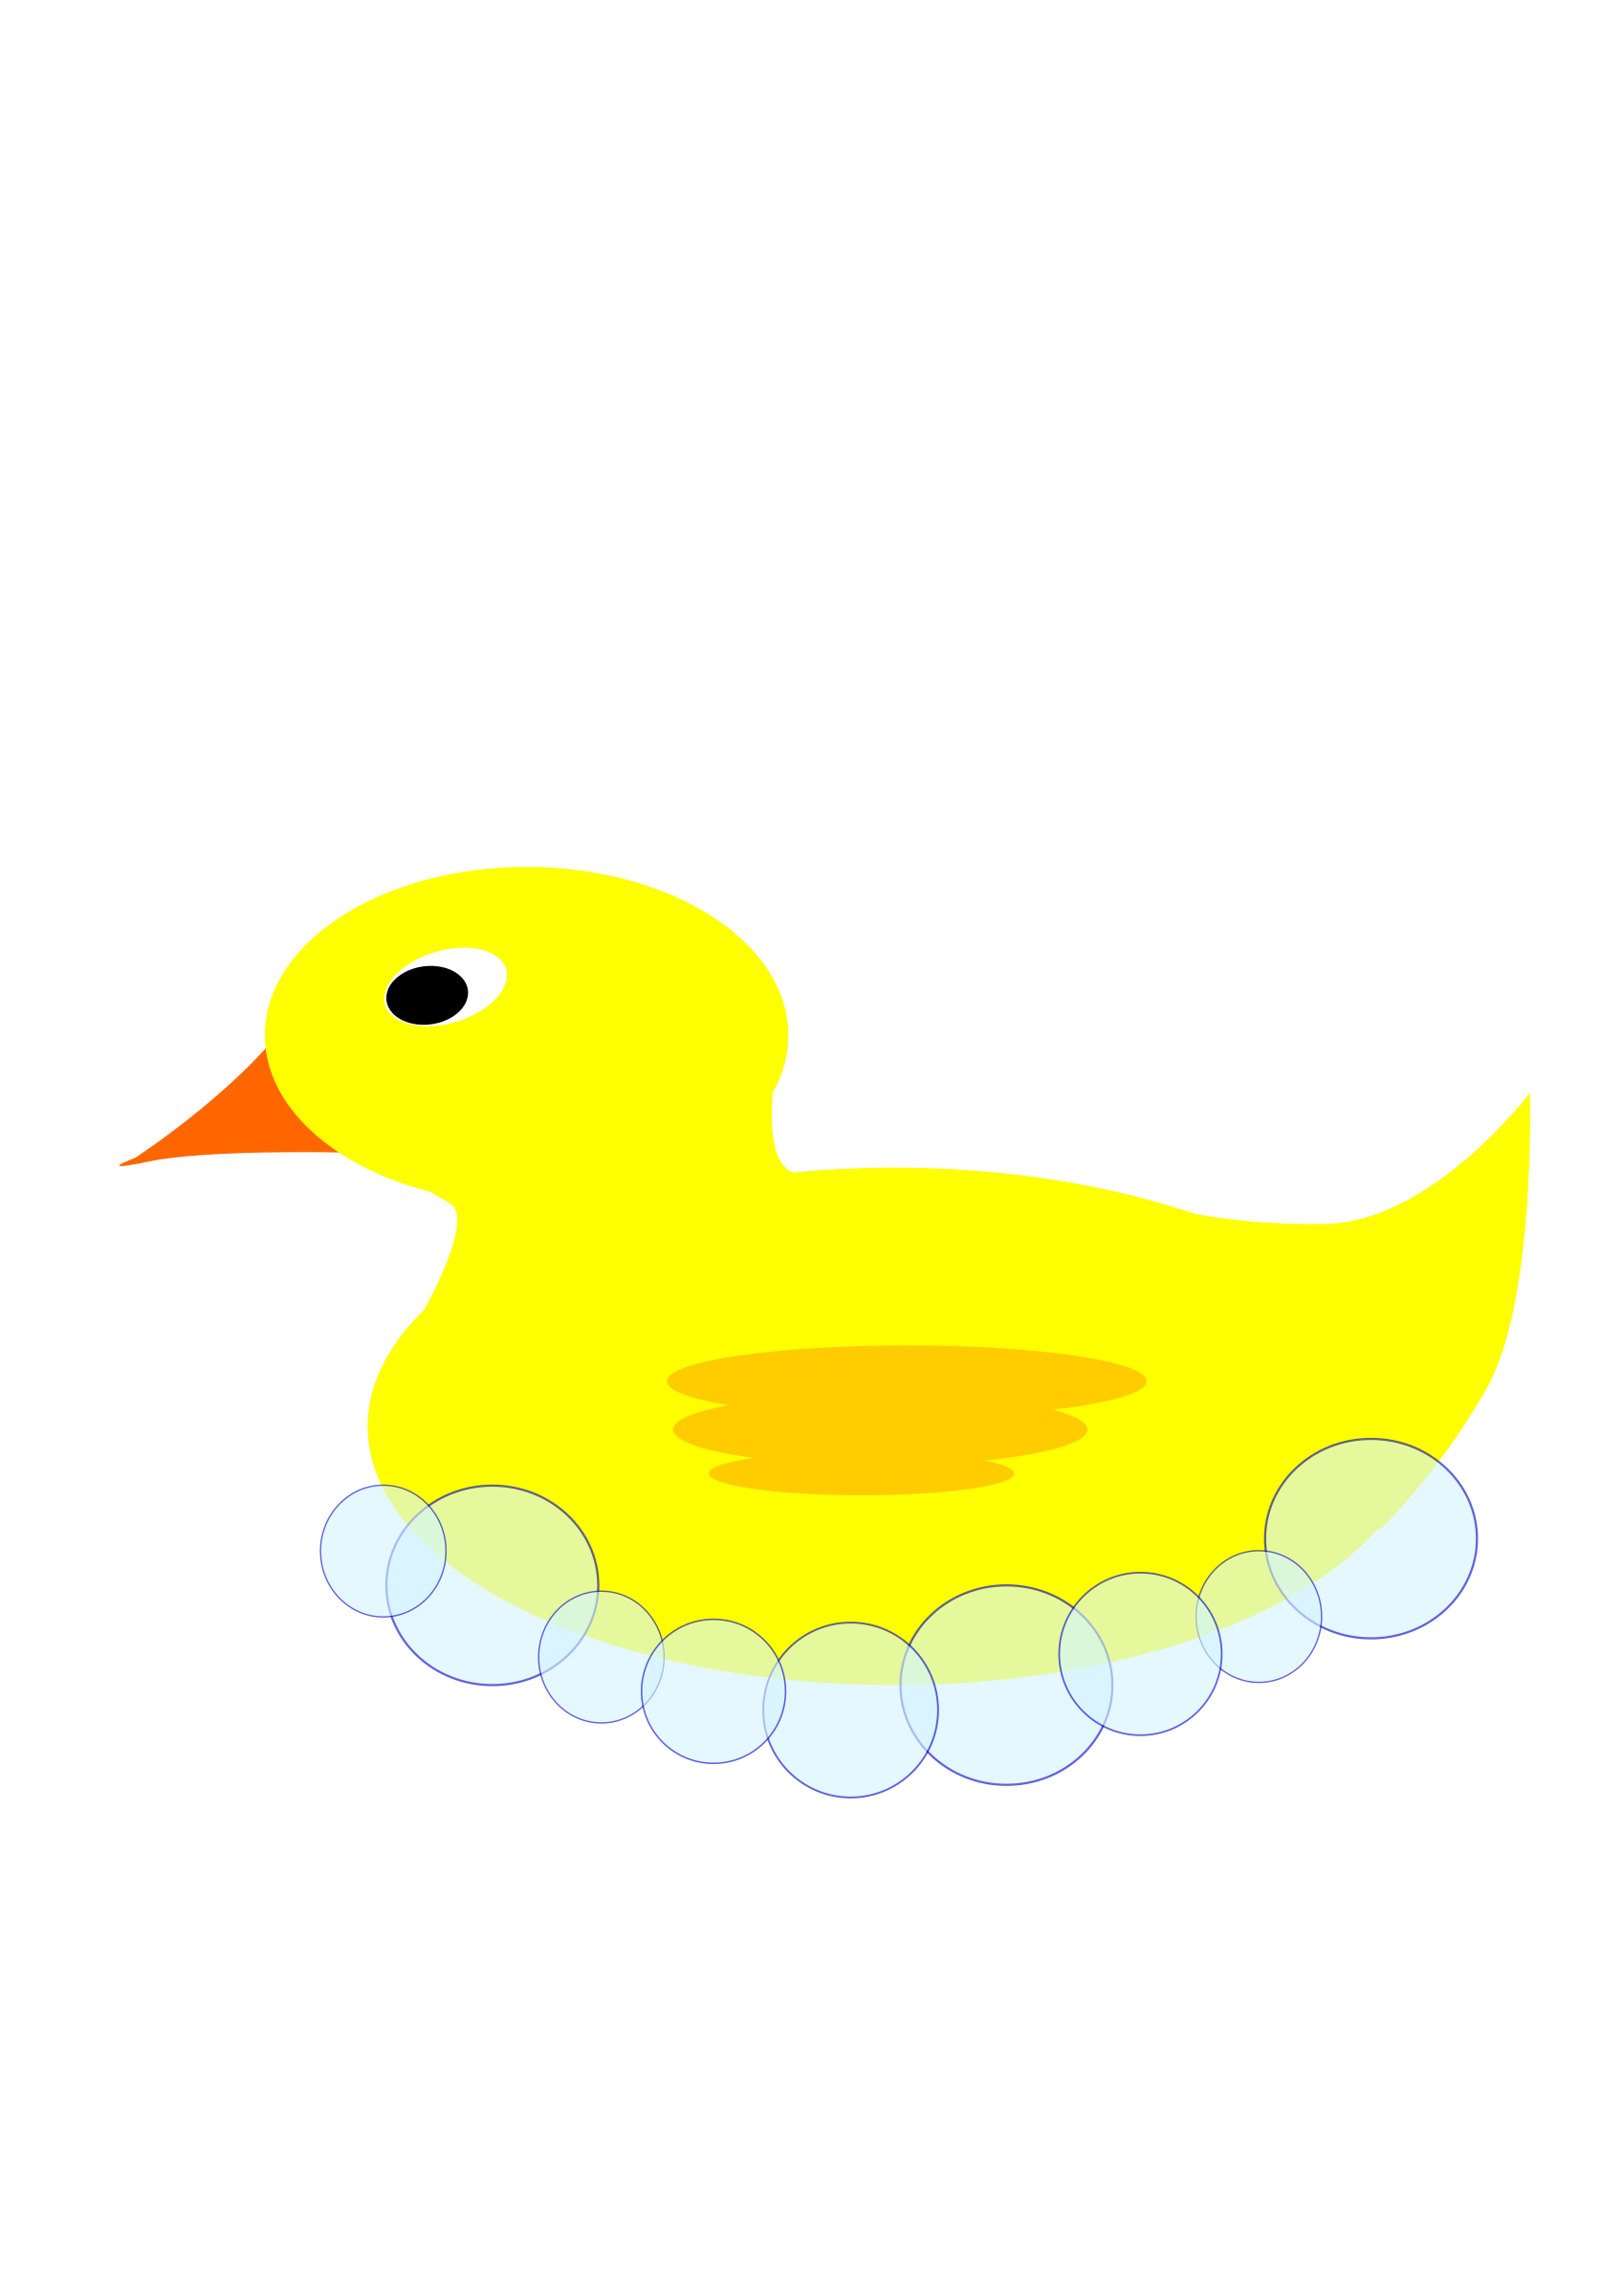 Rubber Ducky in bubbles by barnheartowl